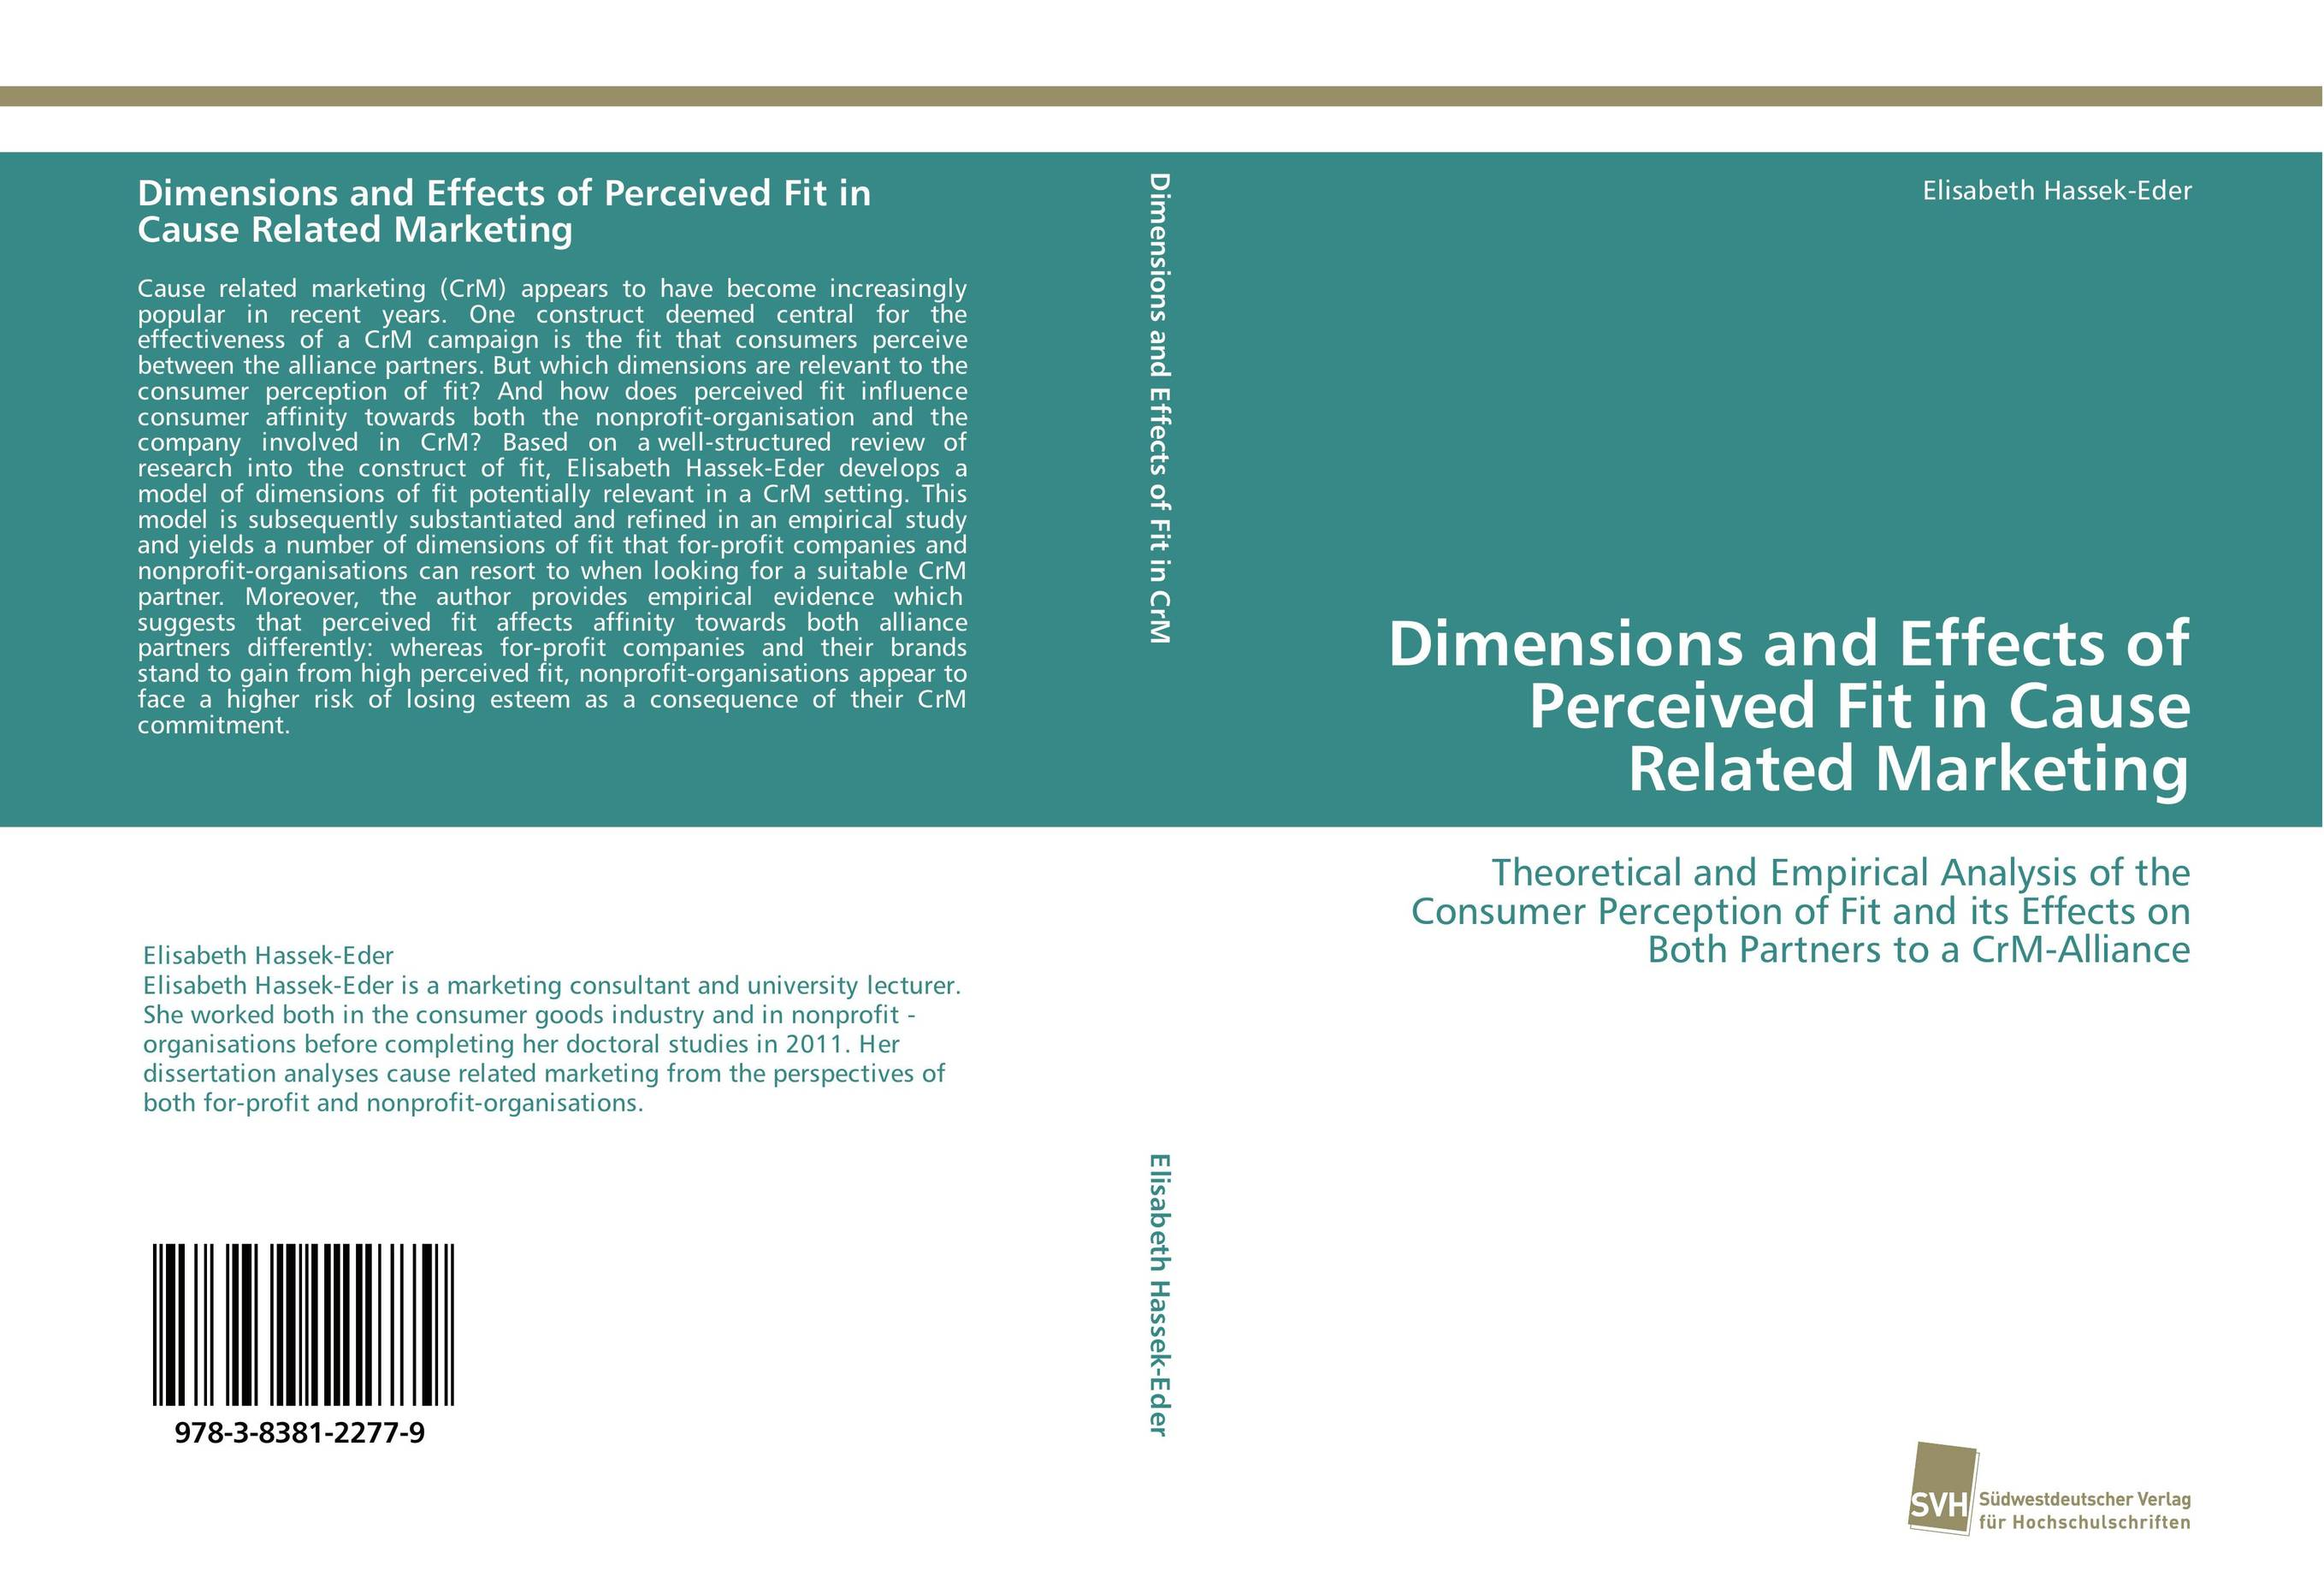 Dimensions and Effects of Perceived Fit in Cause Related Marketing